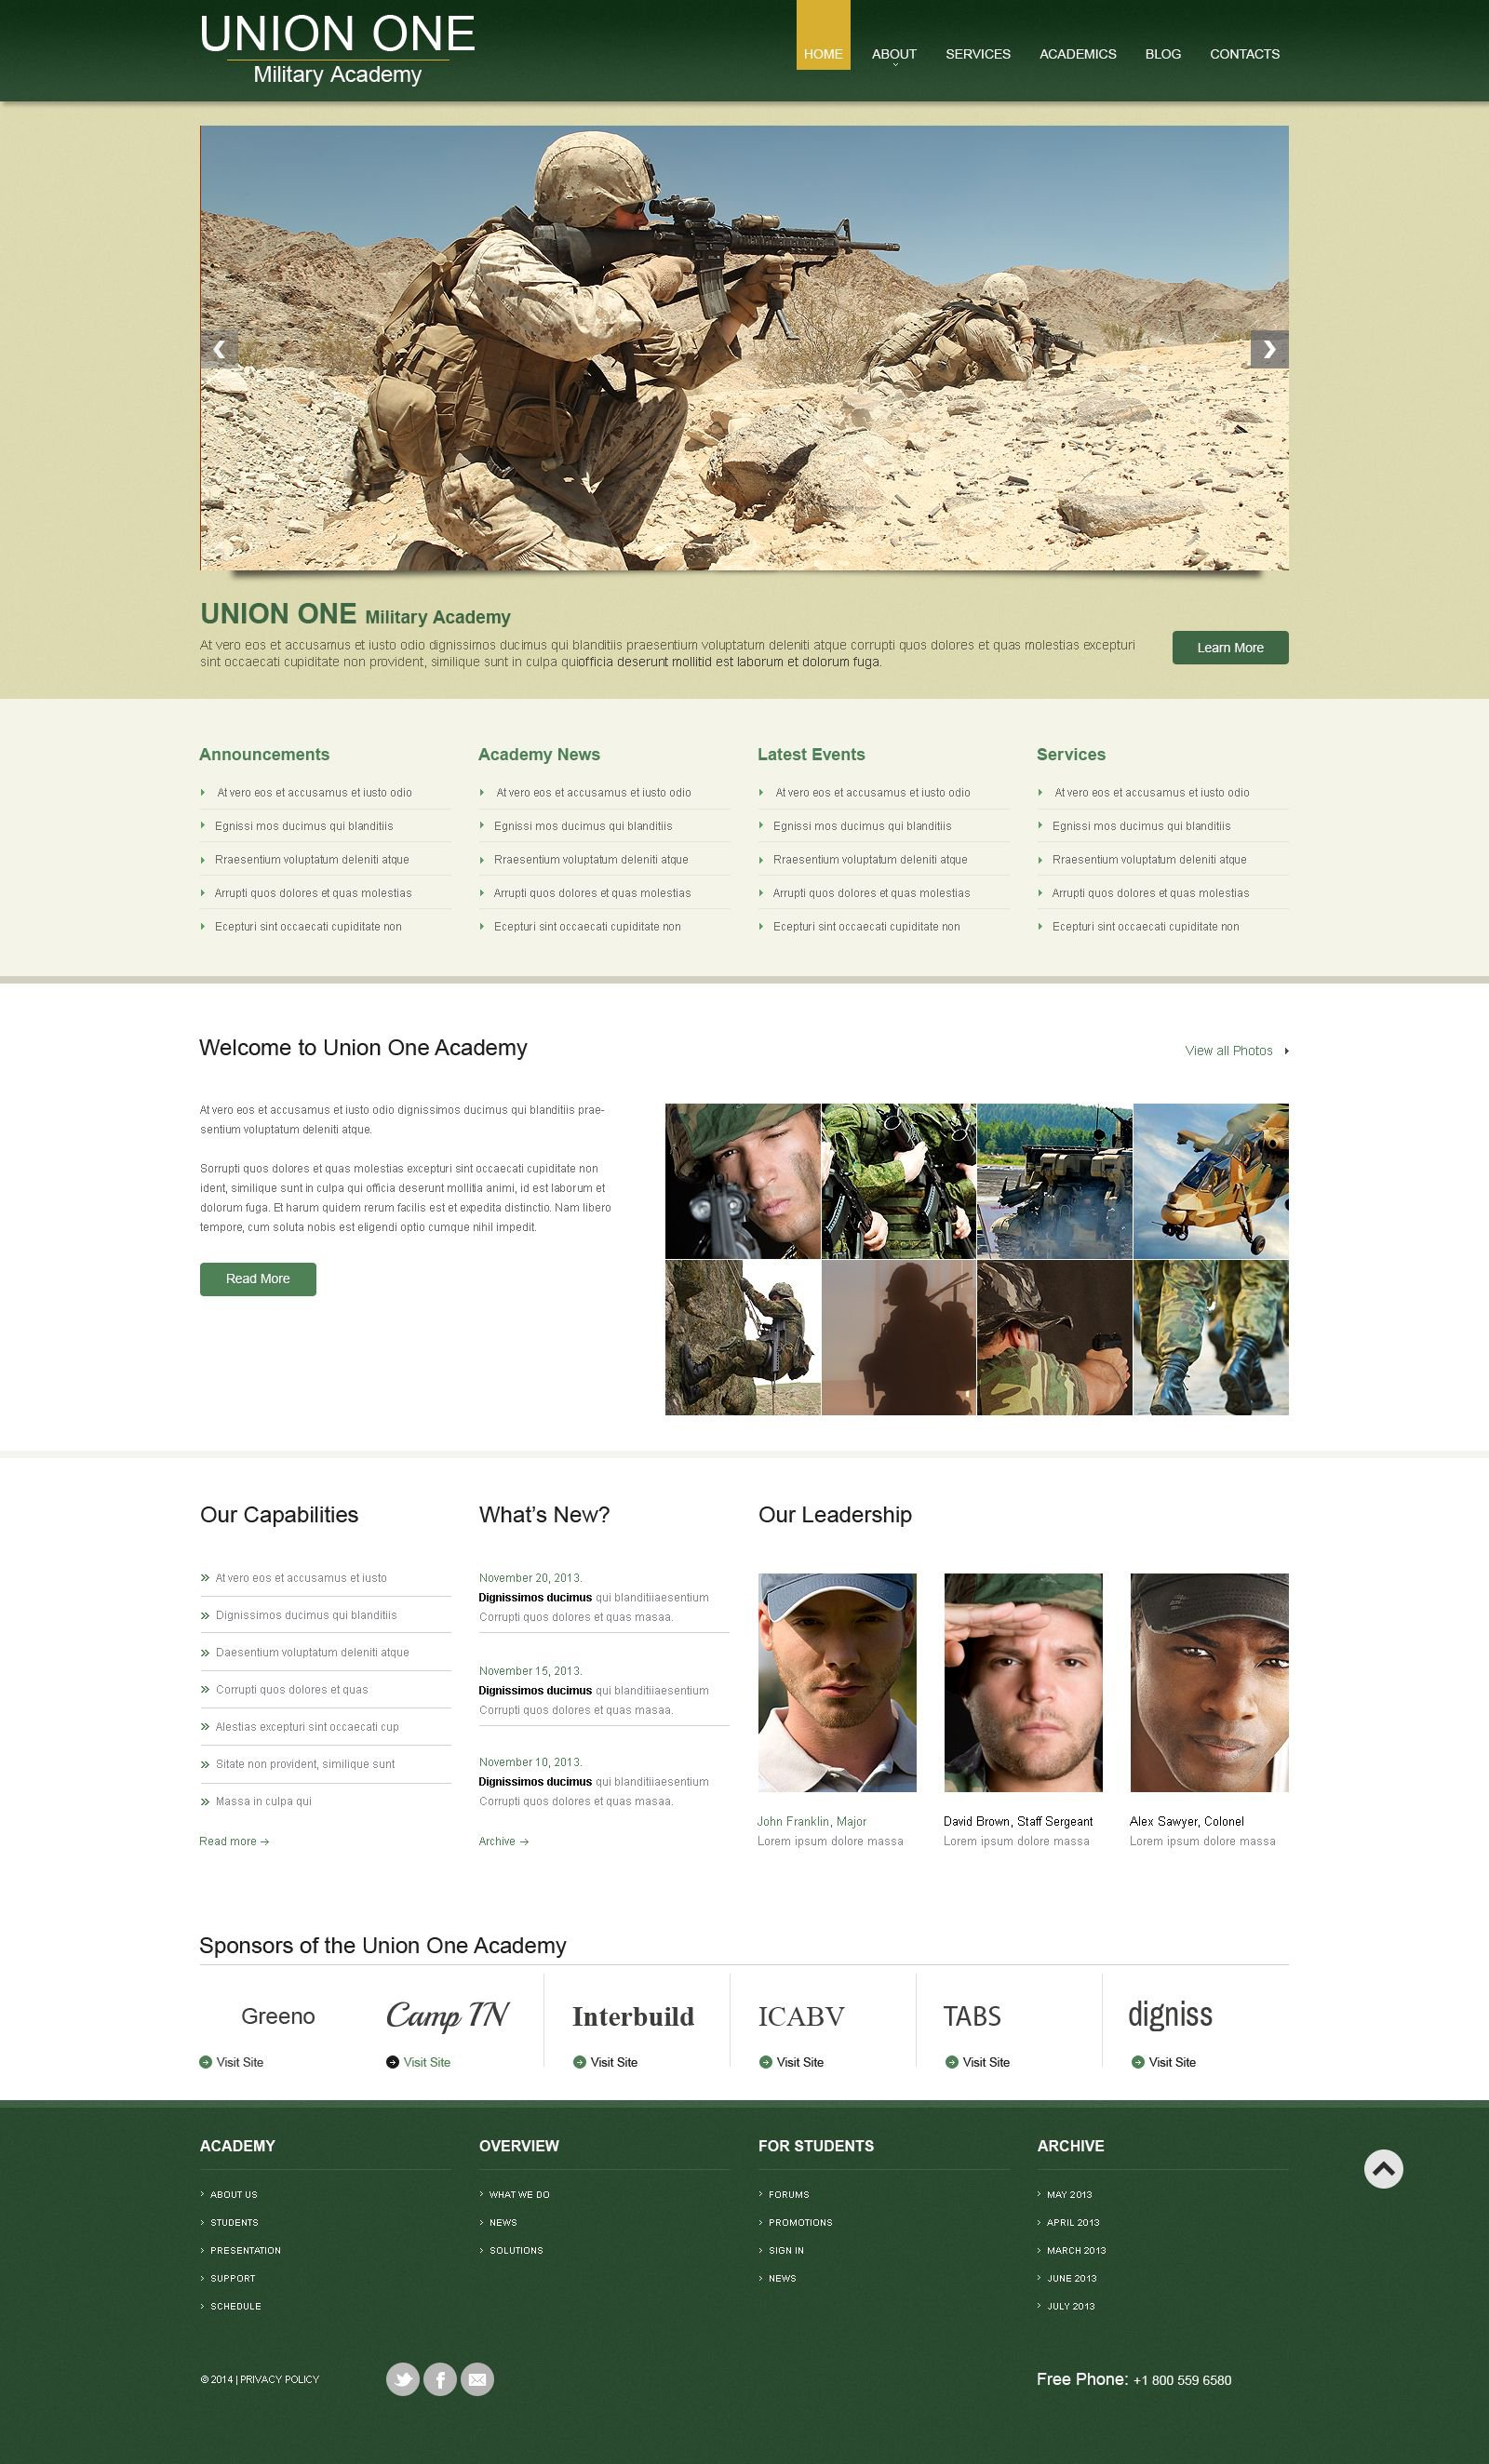 The Union One WordPress Design 53594, one of the best WordPress themes of its kind (military, most popular), also known as union one WordPress template, military rank WordPress template, services WordPress template, rank WordPress template, integrity WordPress template, dignity WordPress template, adherence WordPress template, navy WordPress template, marine WordPress template, air force WordPress template, guard WordPress template, recruits WordPress template, training WordPress template, professionals WordPress template, community WordPress template, soldiers WordPress template, weapon WordPress template, guns WordPress template, technologies WordPress template, vacancies career WordPress template, officer WordPress template, defense WordPress template, veteran WordPress template, enthusiast WordPress template, ribbons WordPress template, medals WordPress template, protection WordPress template, war WordPress template, victory WordPress template, academy WordPress template, studen and related with union one, military rank, services, rank, integrity, dignity, adherence, navy, marine, air force, guard, recruits, training, professionals, community, soldiers, weapon, guns, technologies, vacancies career, officer, defense, veteran, enthusiast, ribbons, medals, protection, war, victory, academy, studen, etc.